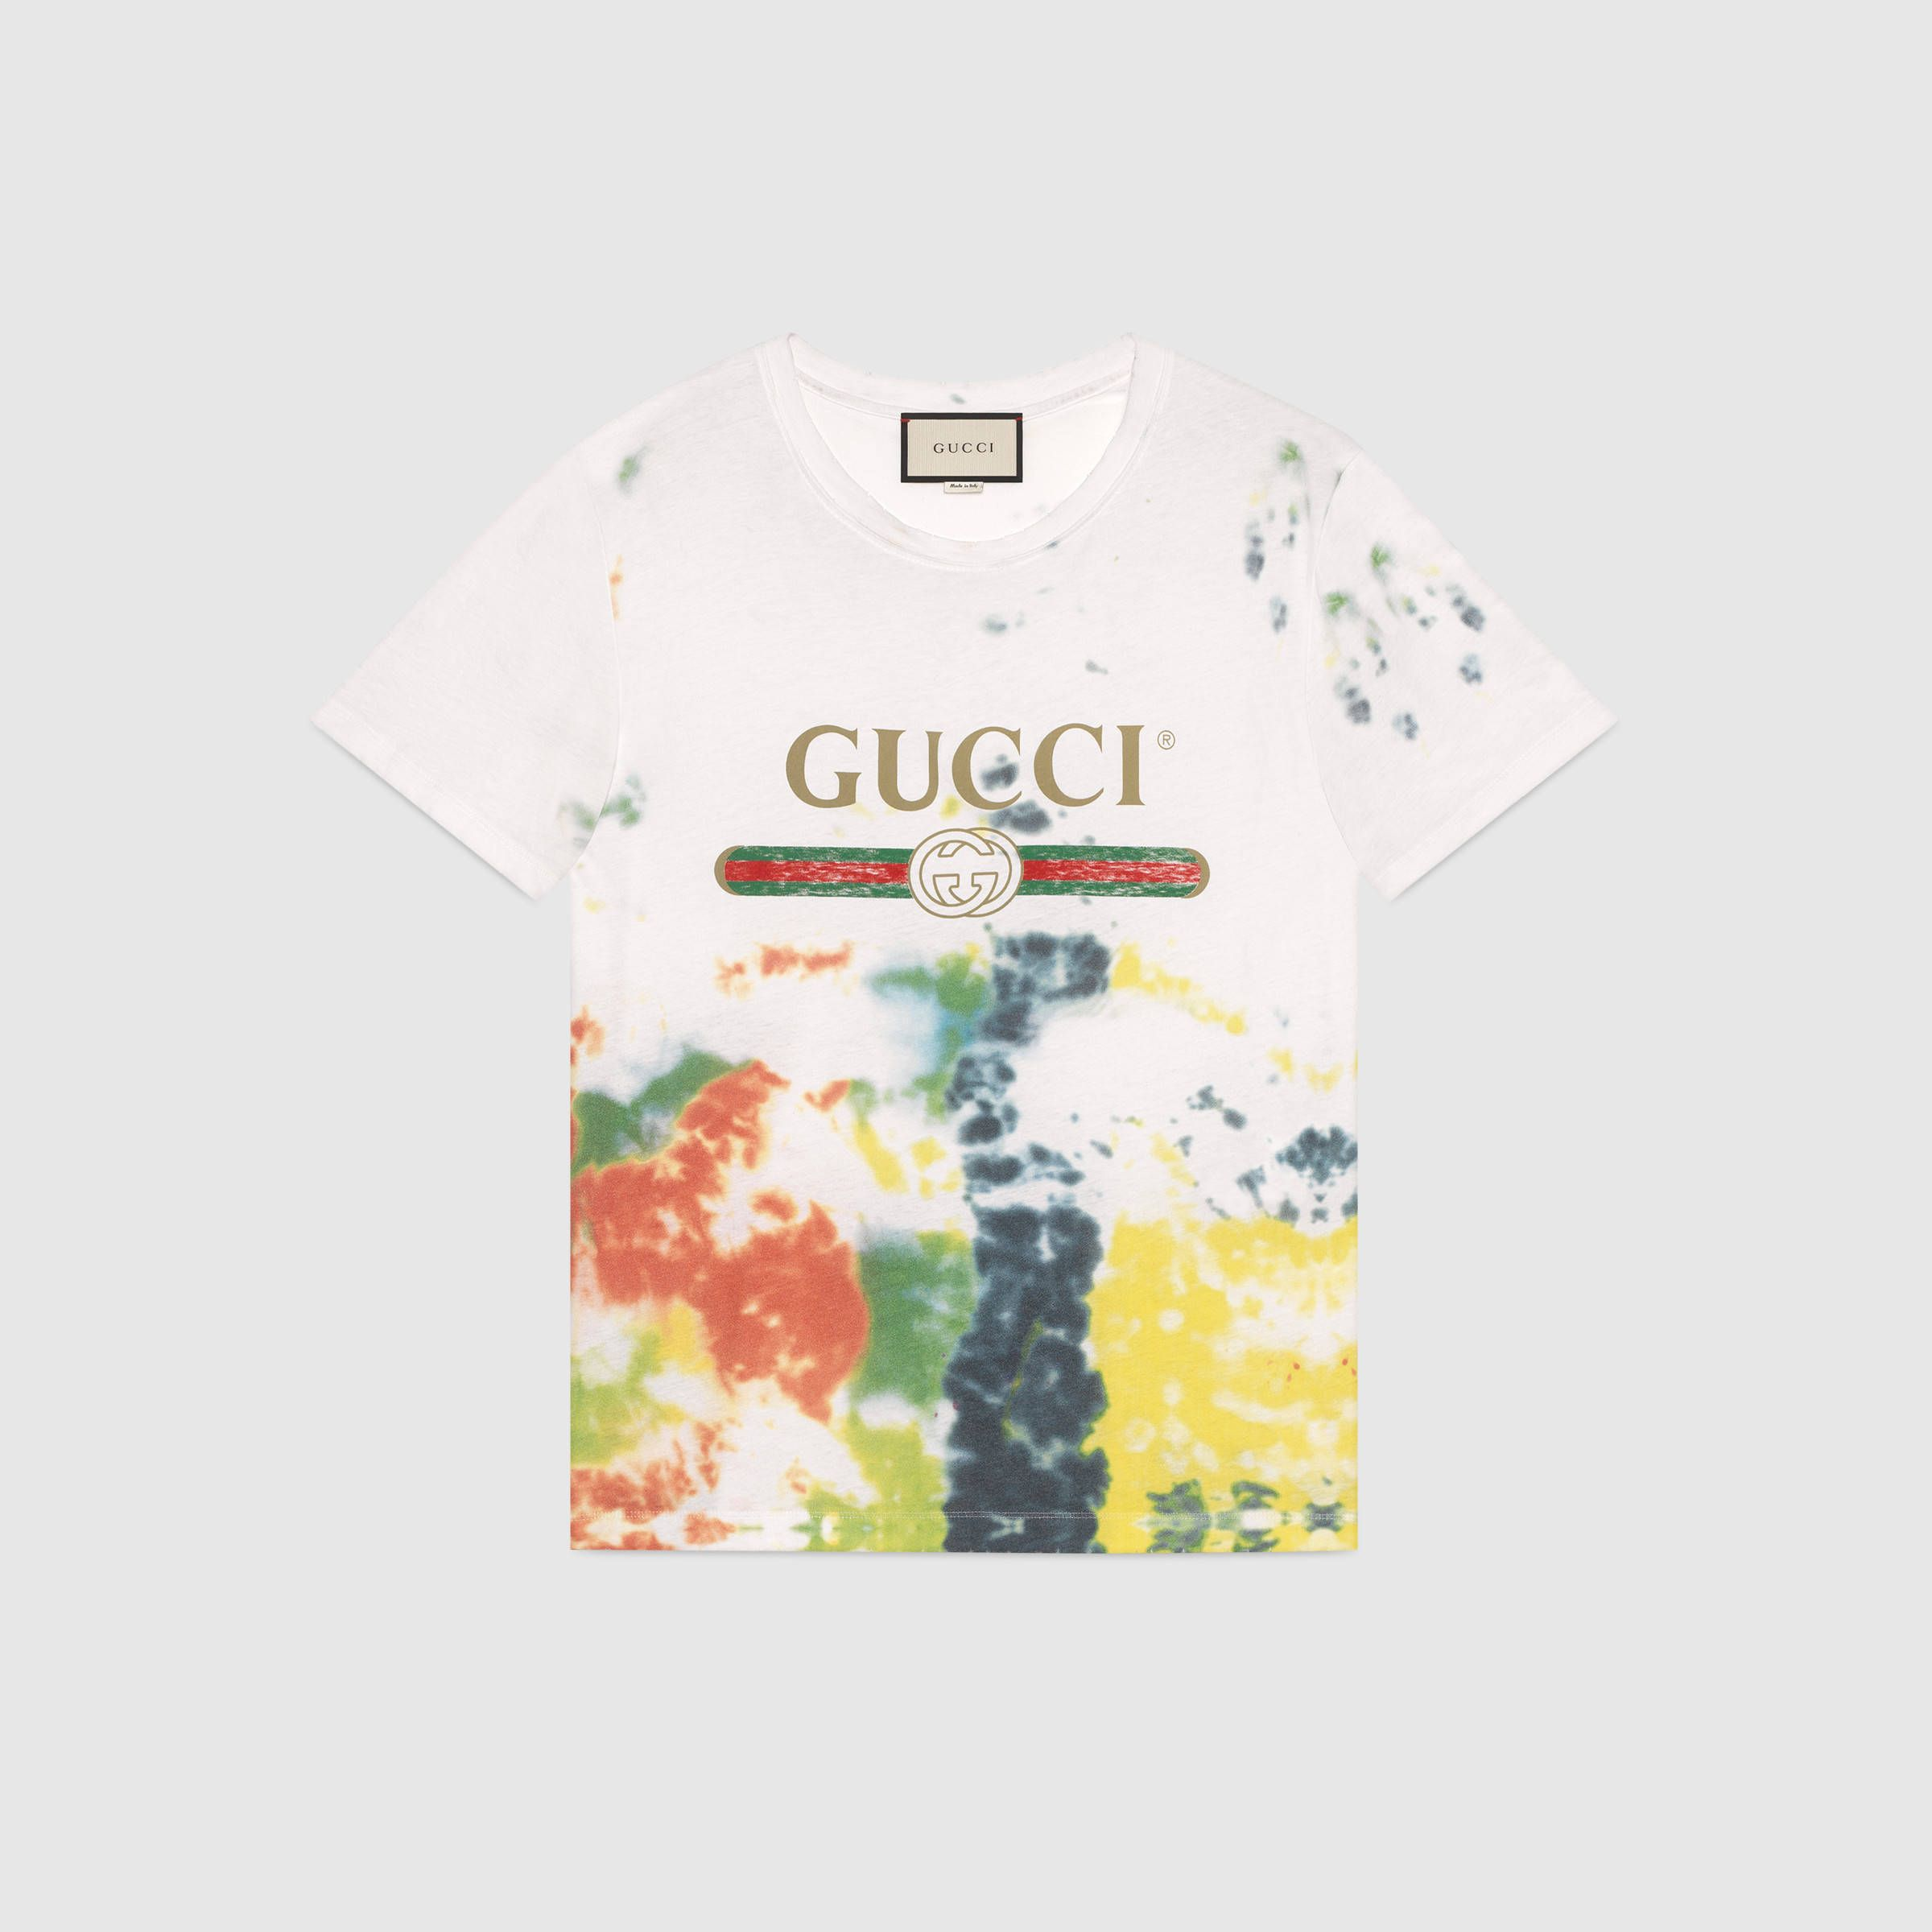 72d238a1 グッチ プリント 絞り染めコットン Tシャツ   fashion_off   Pinterest ...